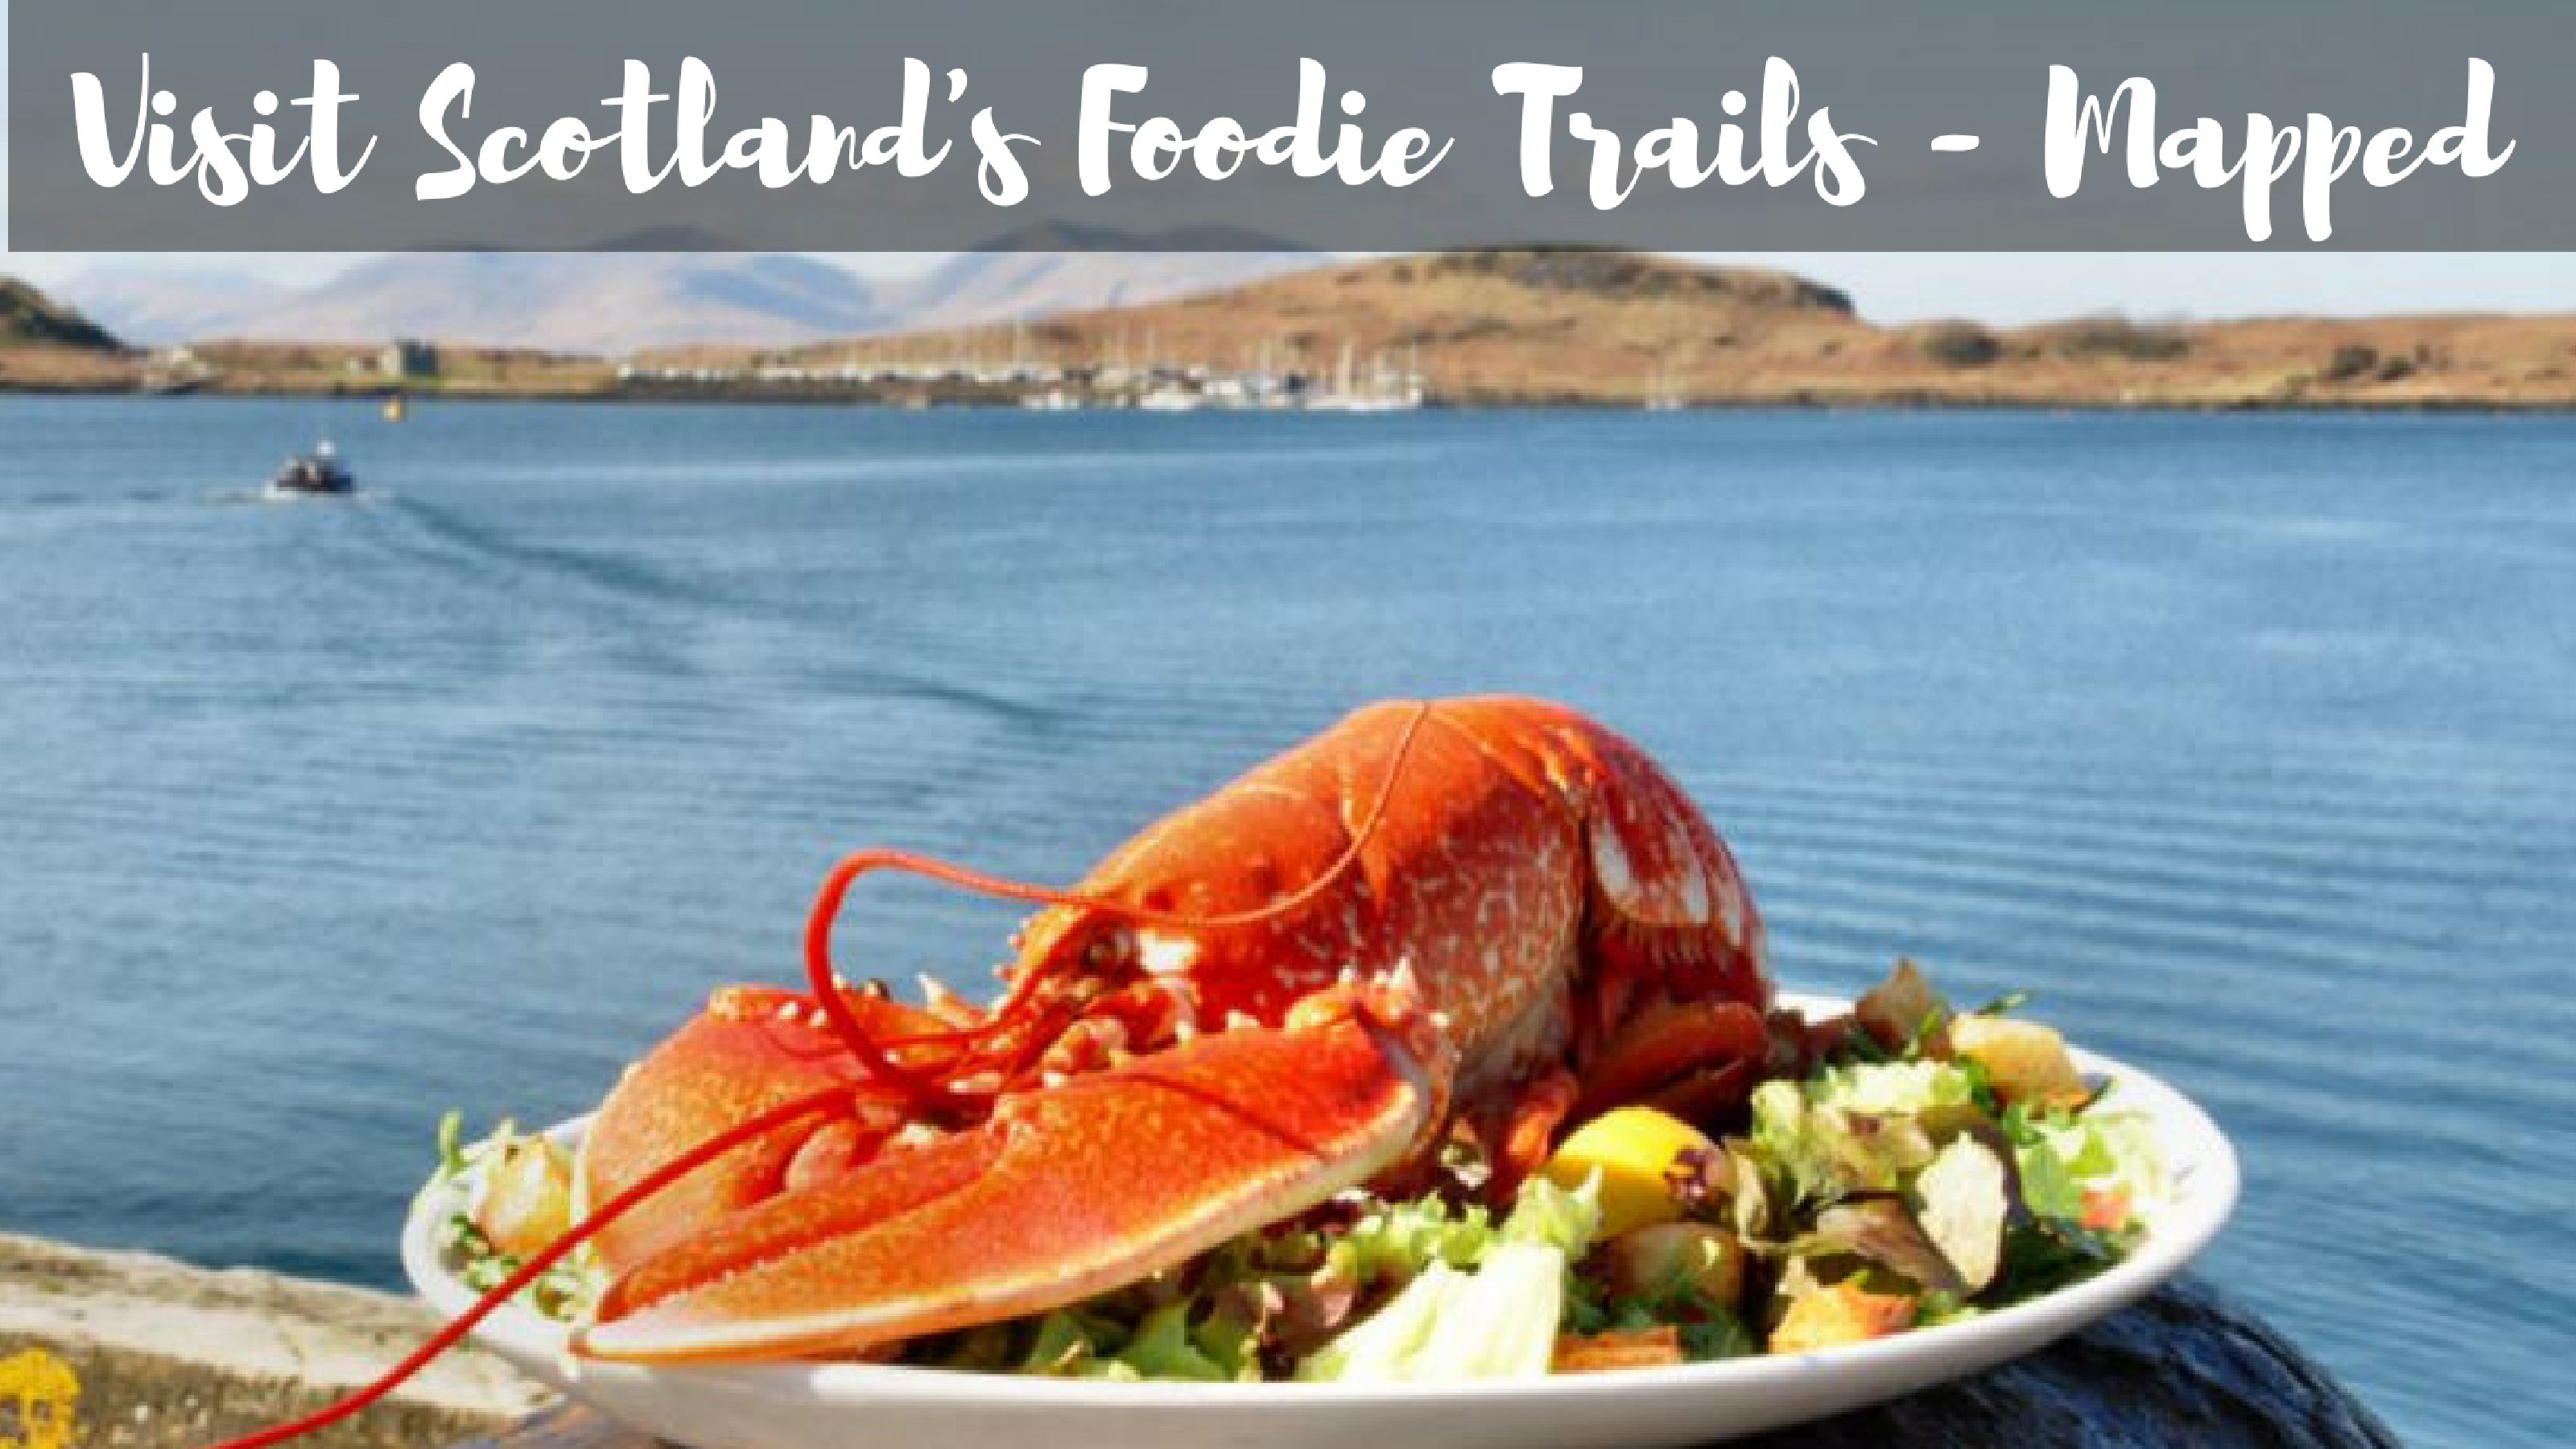 Visit Scotland's Foodie Trails – Mapped